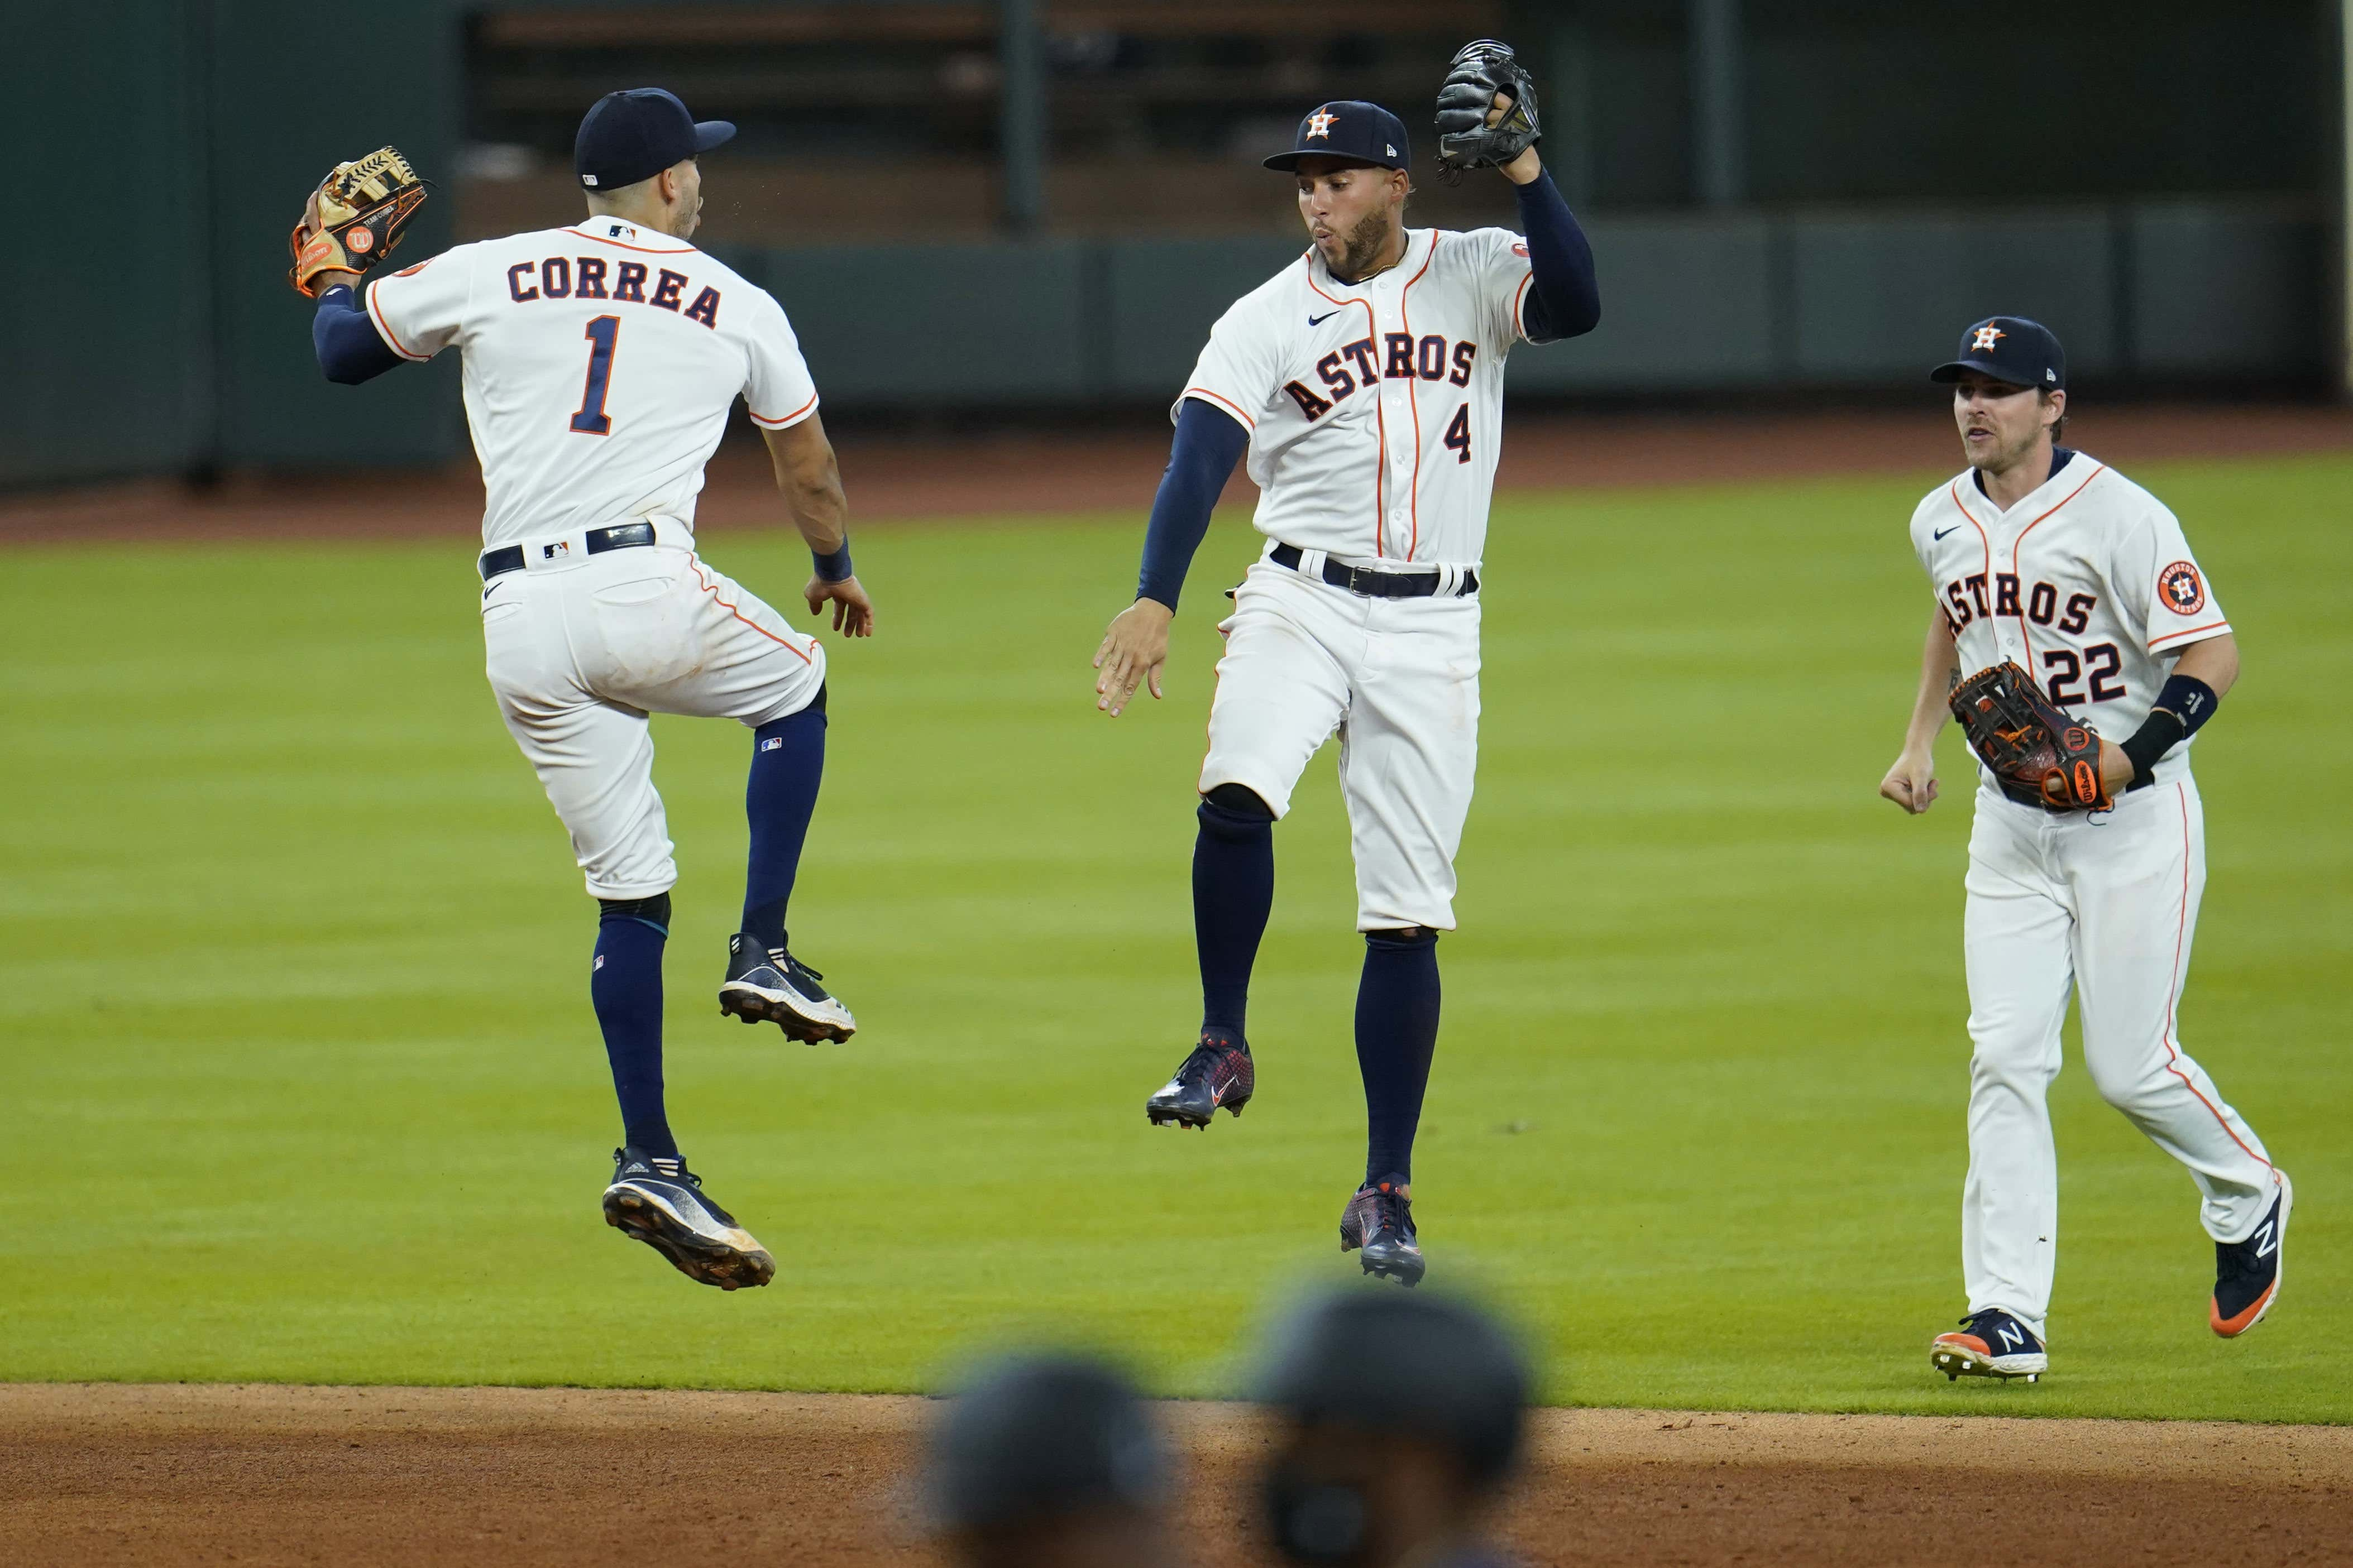 Houston Astros' Carlos Correa (1) and George Springer (4) celebrate after a baseball game against the Seattle Mariners, in Houston. The Astros won 7-2